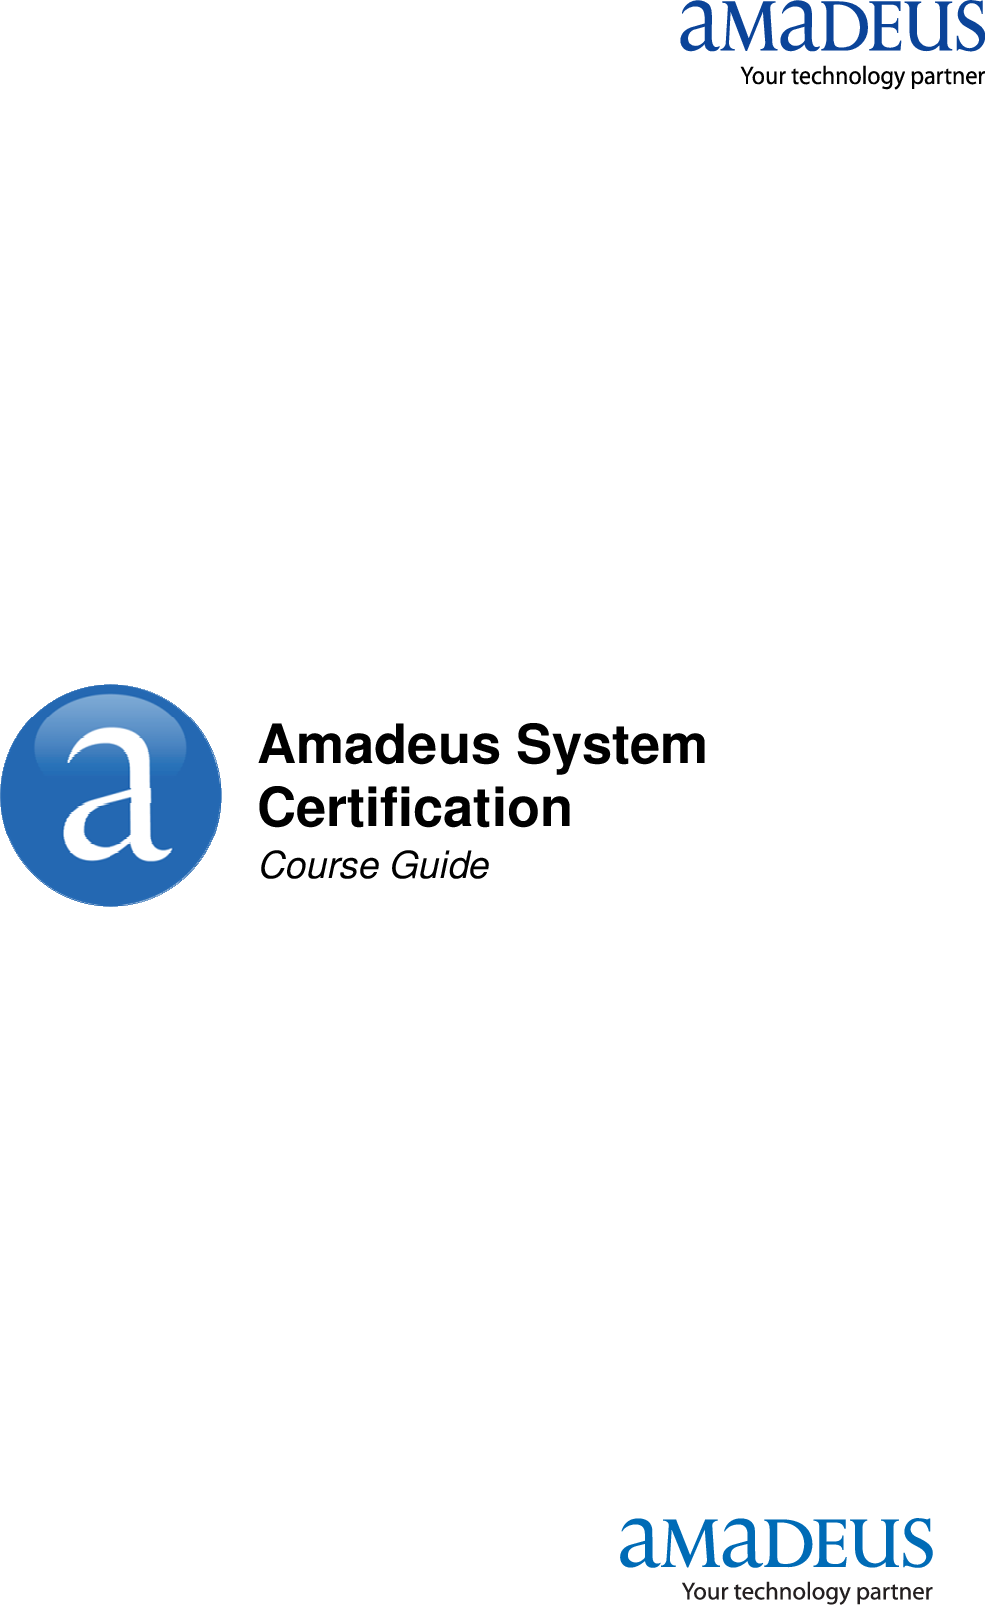 Amadeus System Certification Course Guide May 2012